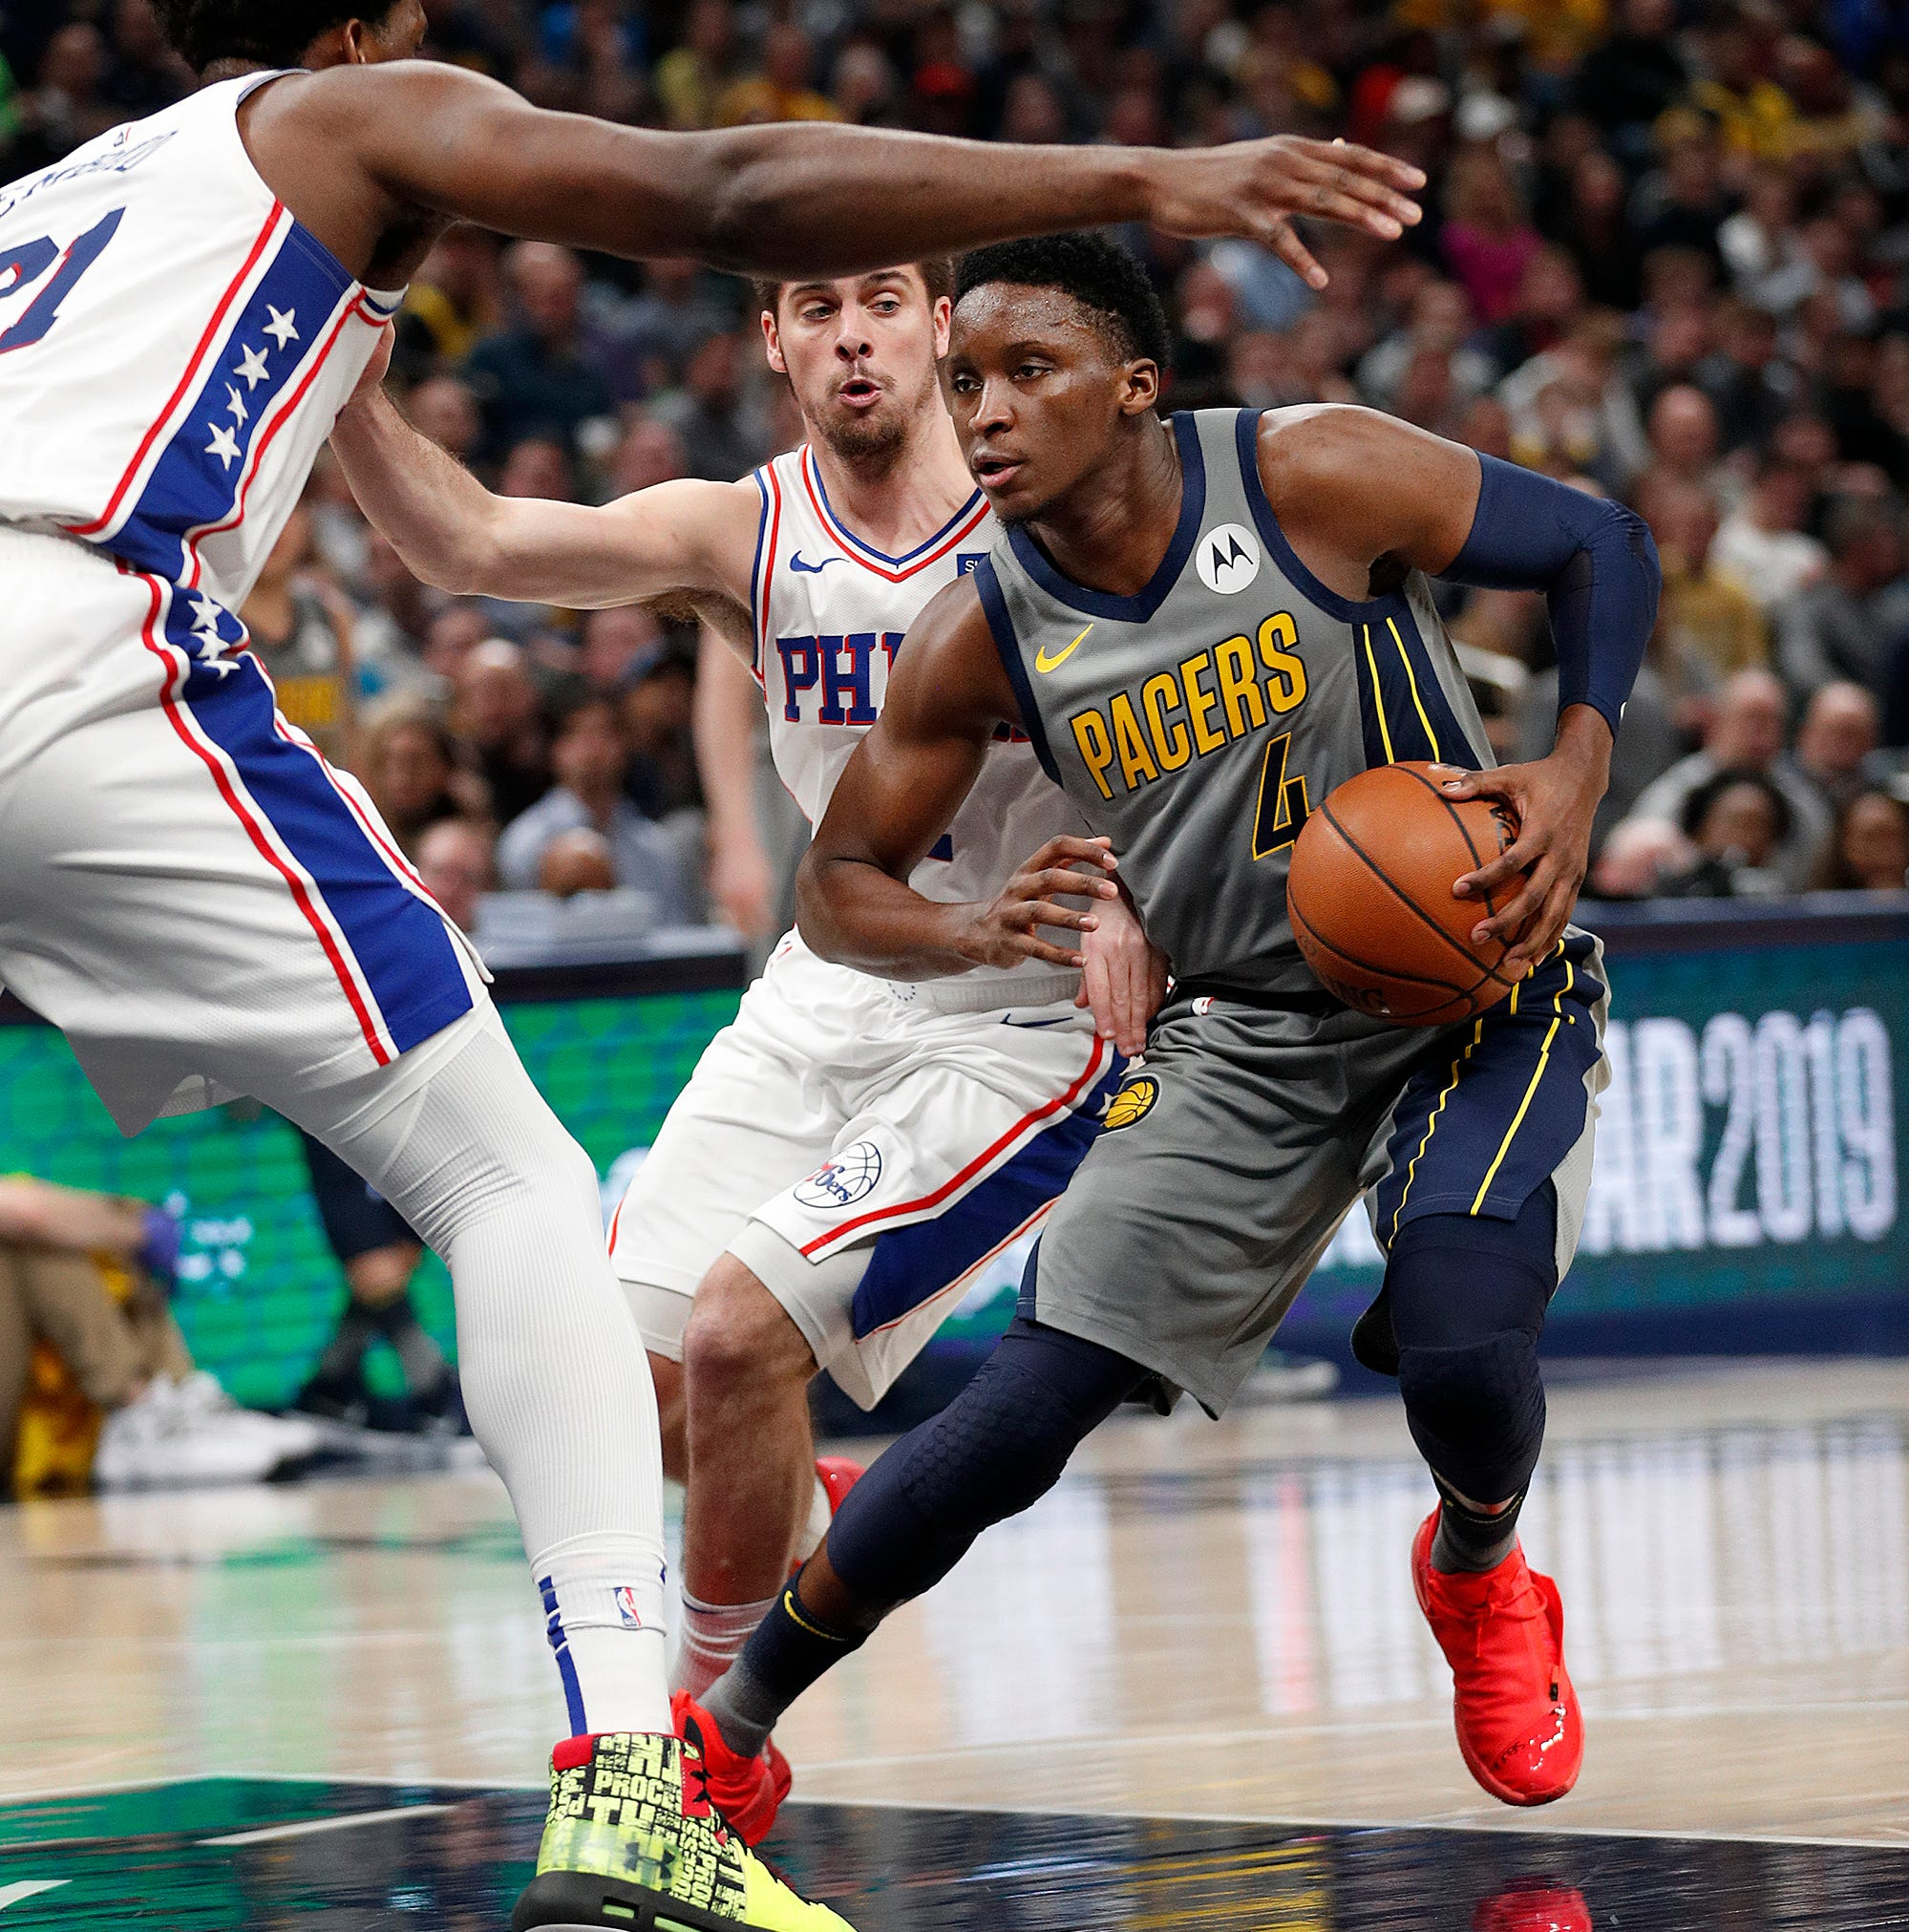 TNT analysts say Pacers can't quite match the best in the NBA's Eastern Conference